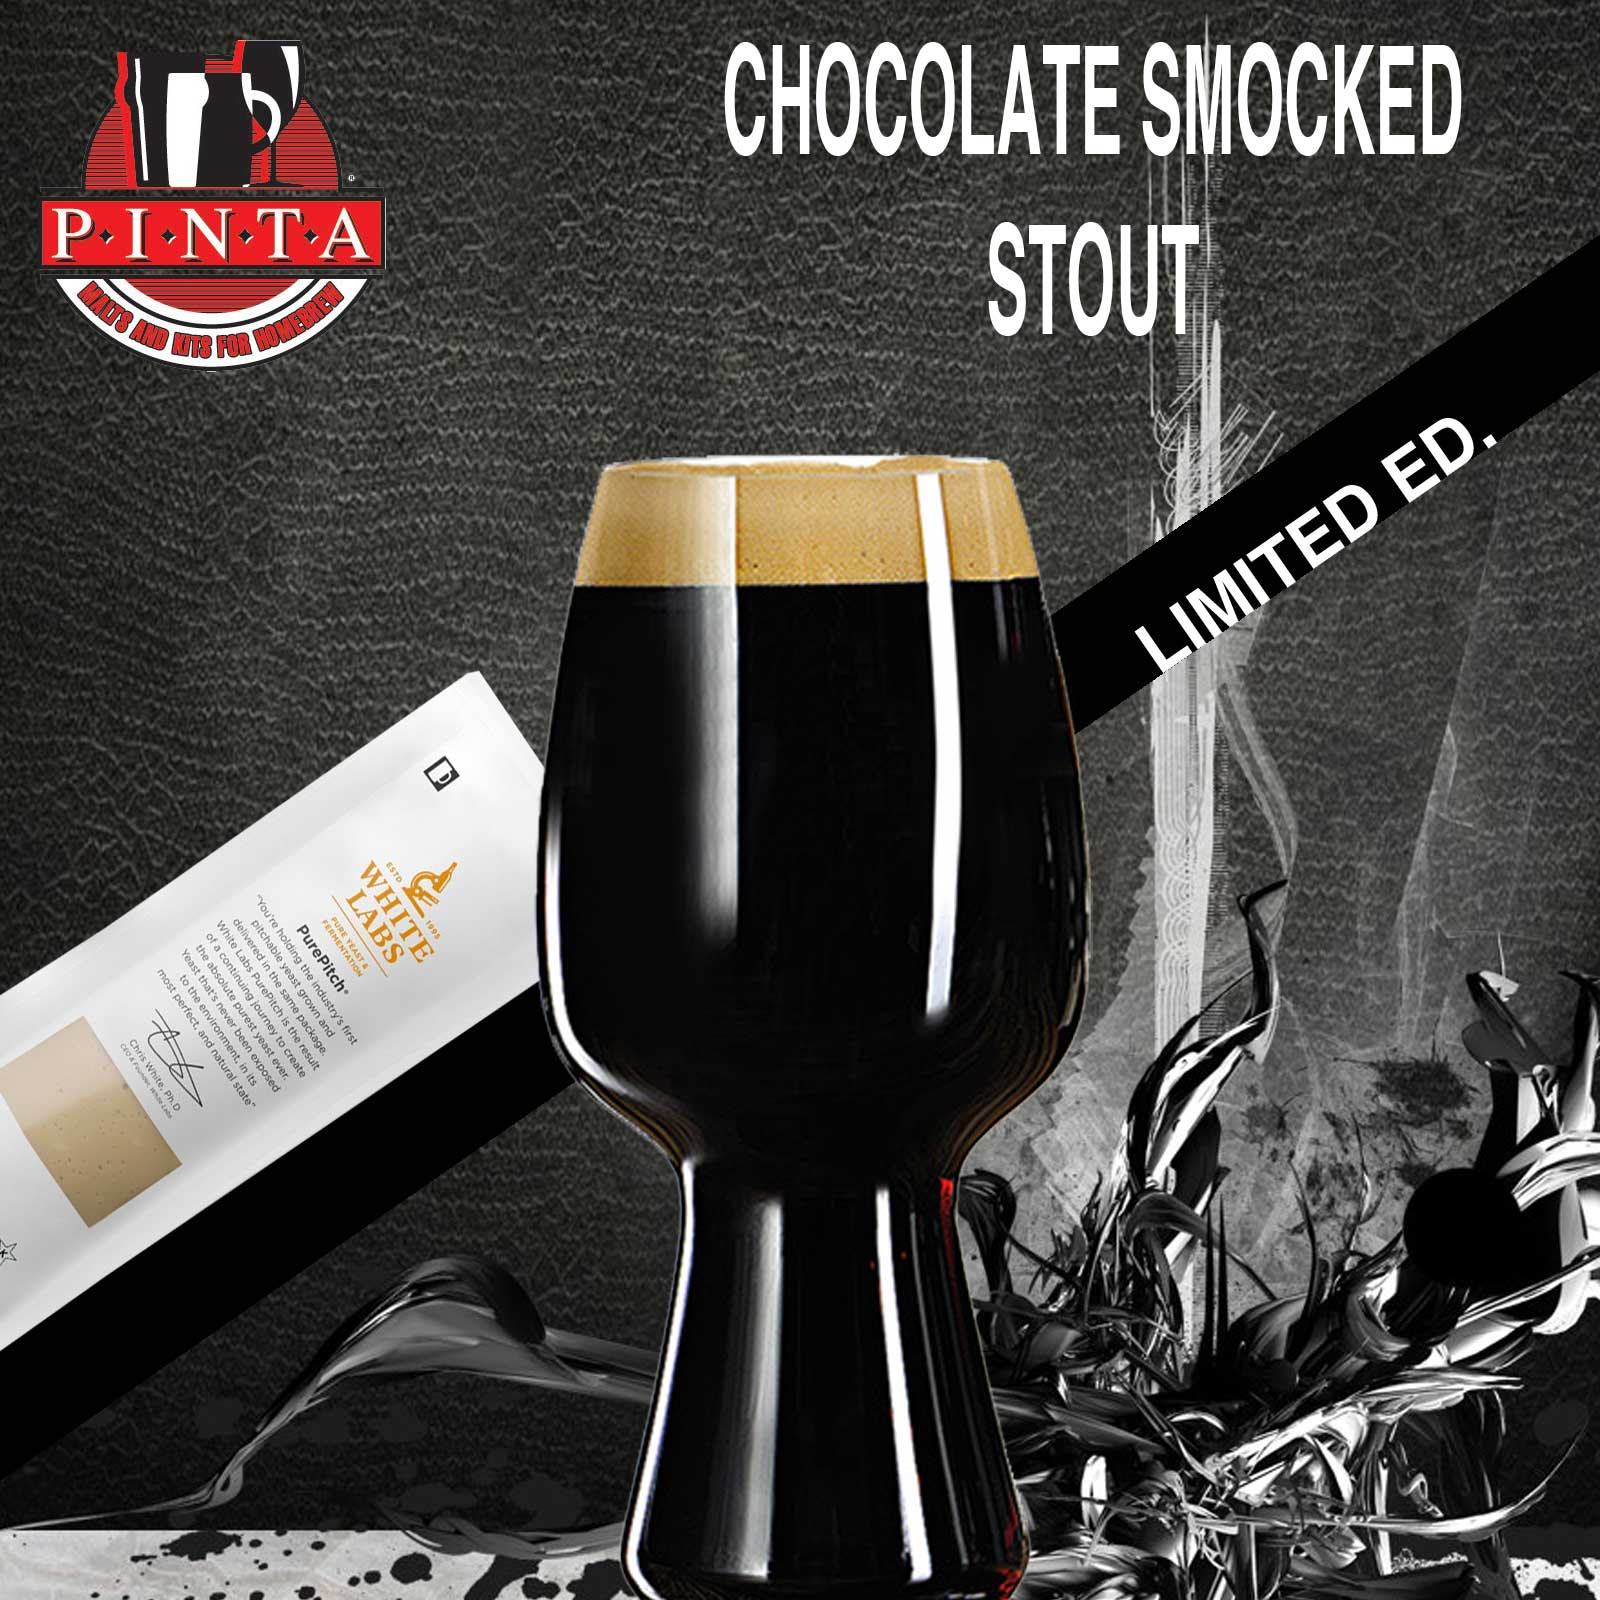 2c304da_chocolatestout